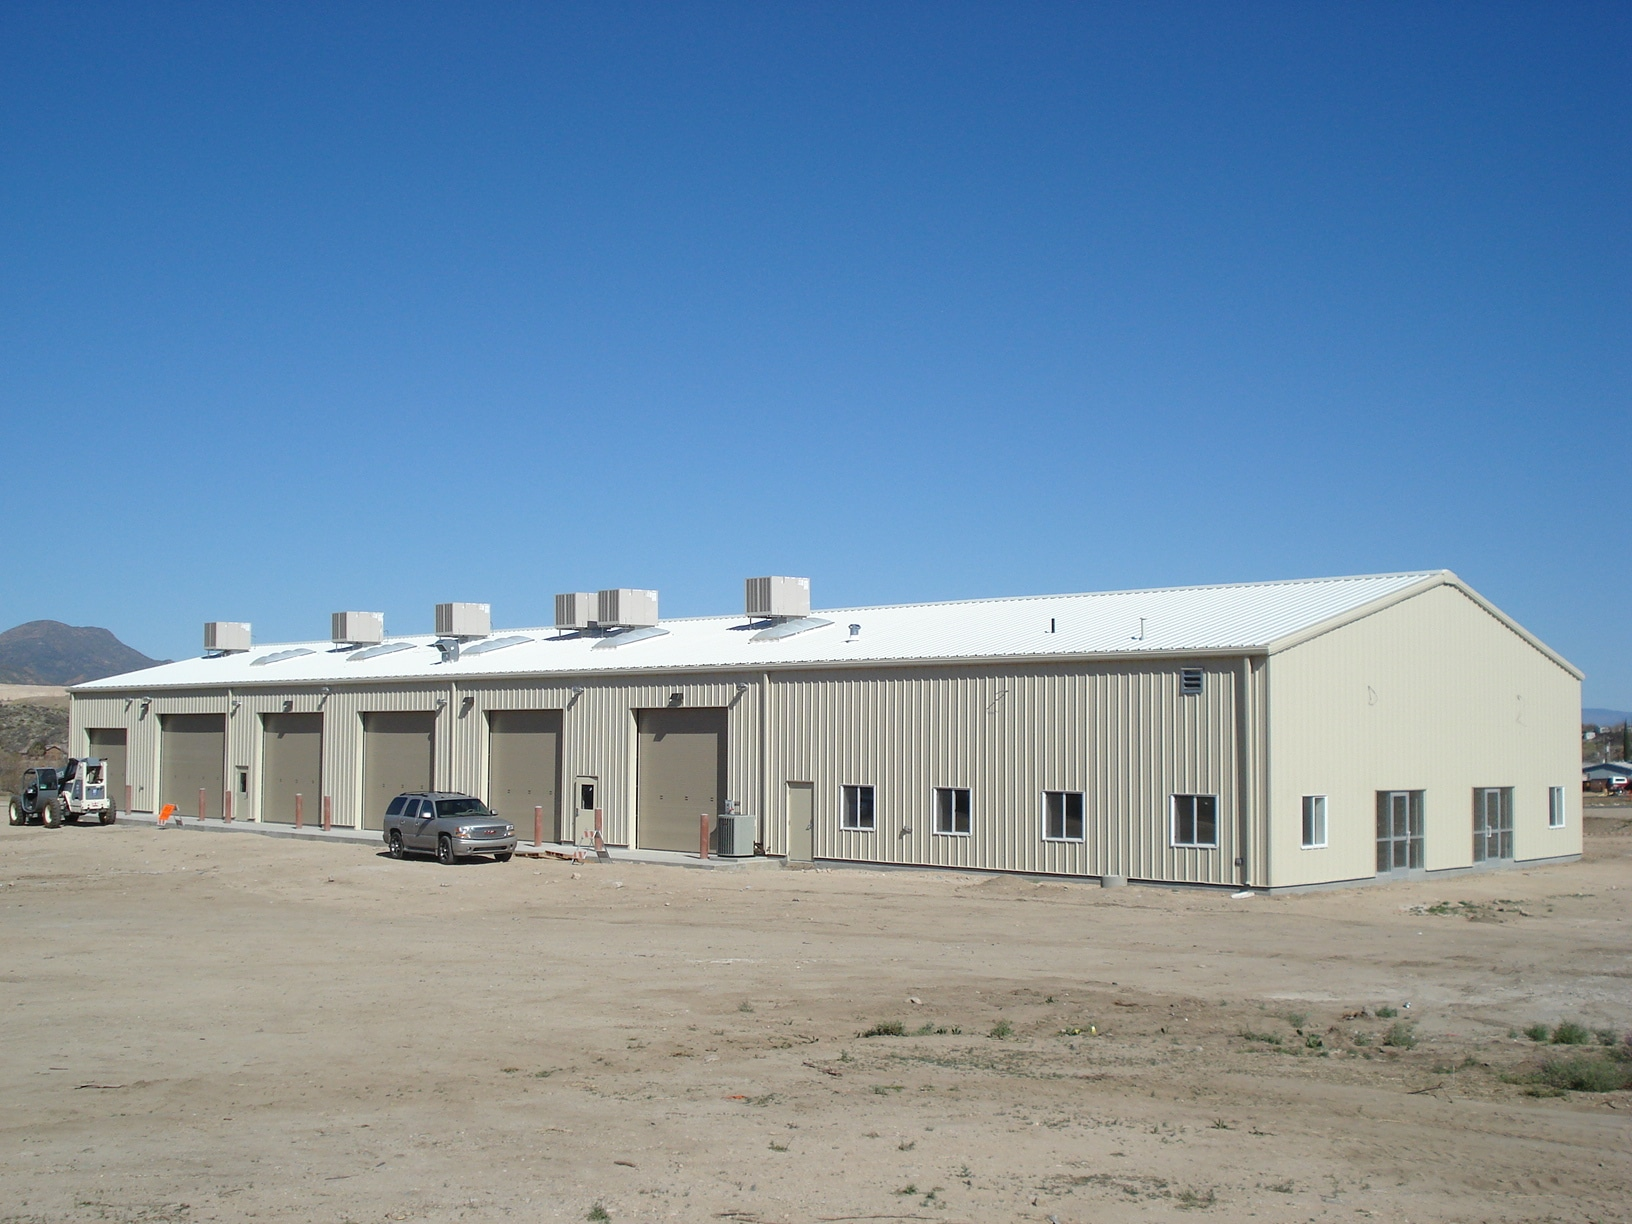 Gila County's Maintenance Facility